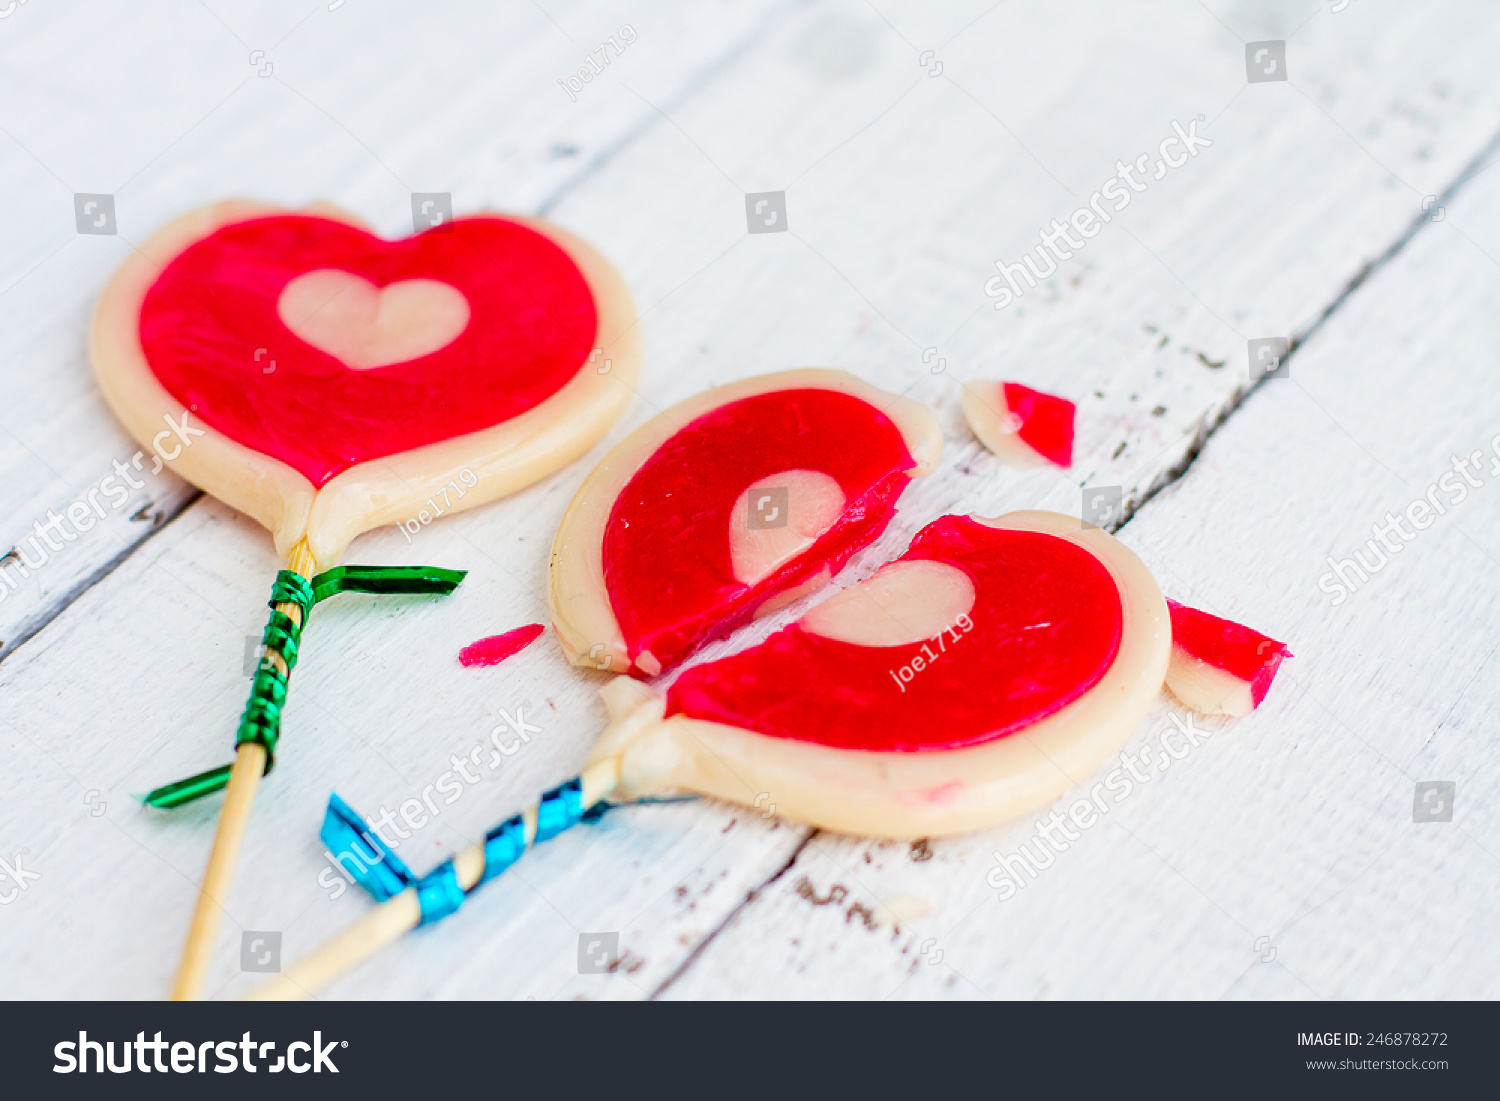 Candy broken heart sweet tasty symbol stock photo 246878272 candy broken heart the sweet and tasty as a symbol of valentines day and love of buycottarizona